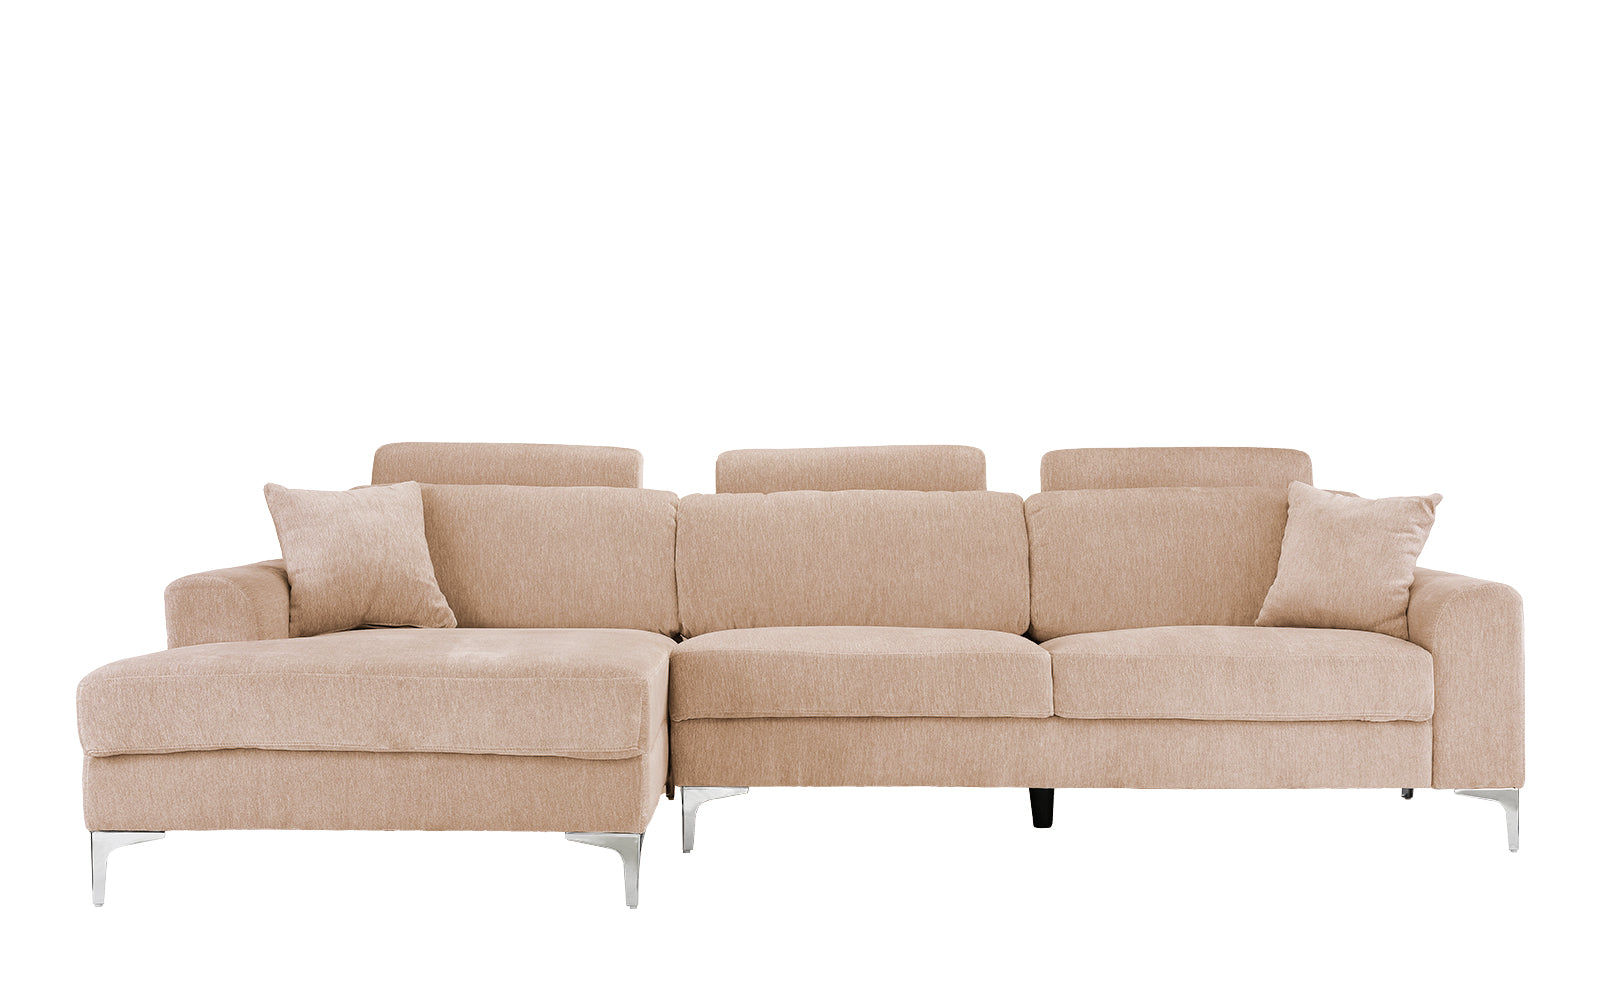 Large Linen Sectional Sofa Image